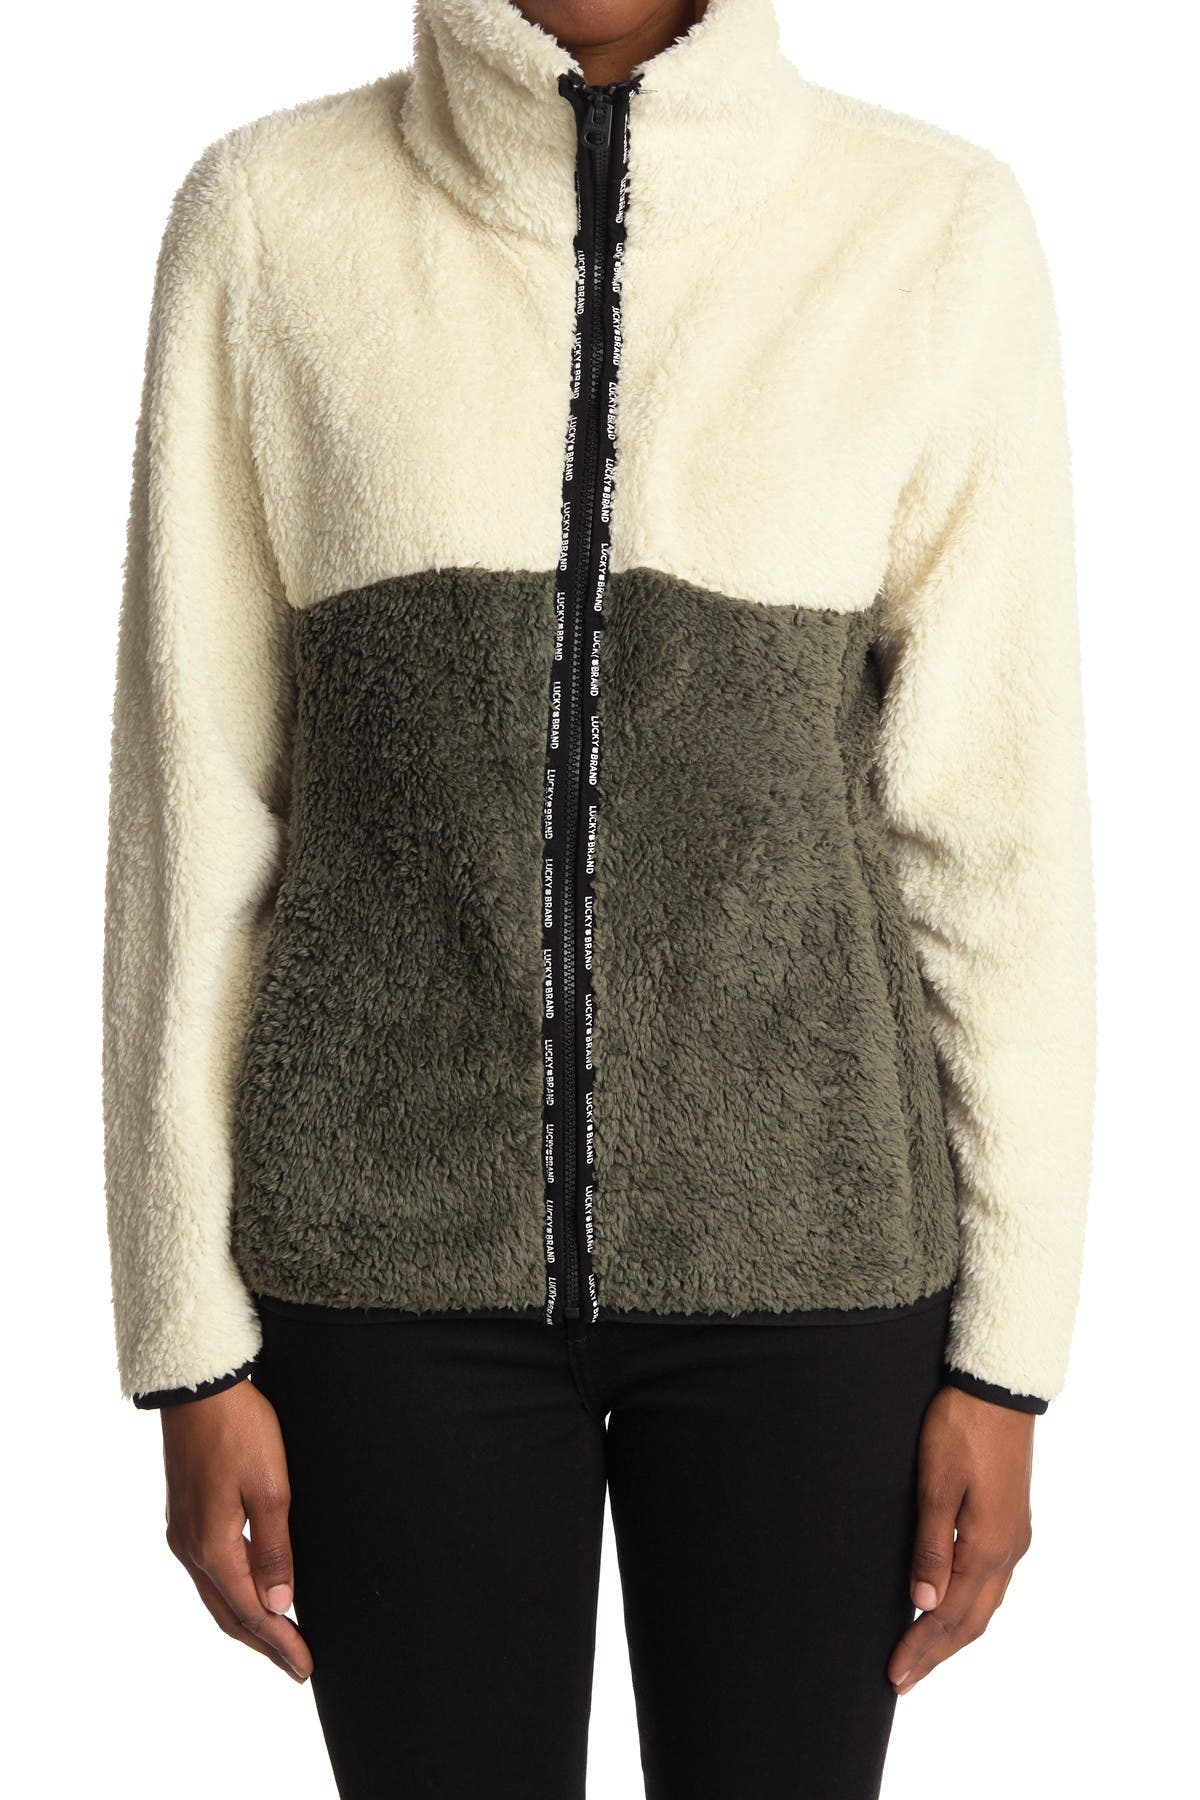 Lucky Brand Colorblock Faux Shearling Zip Jacket